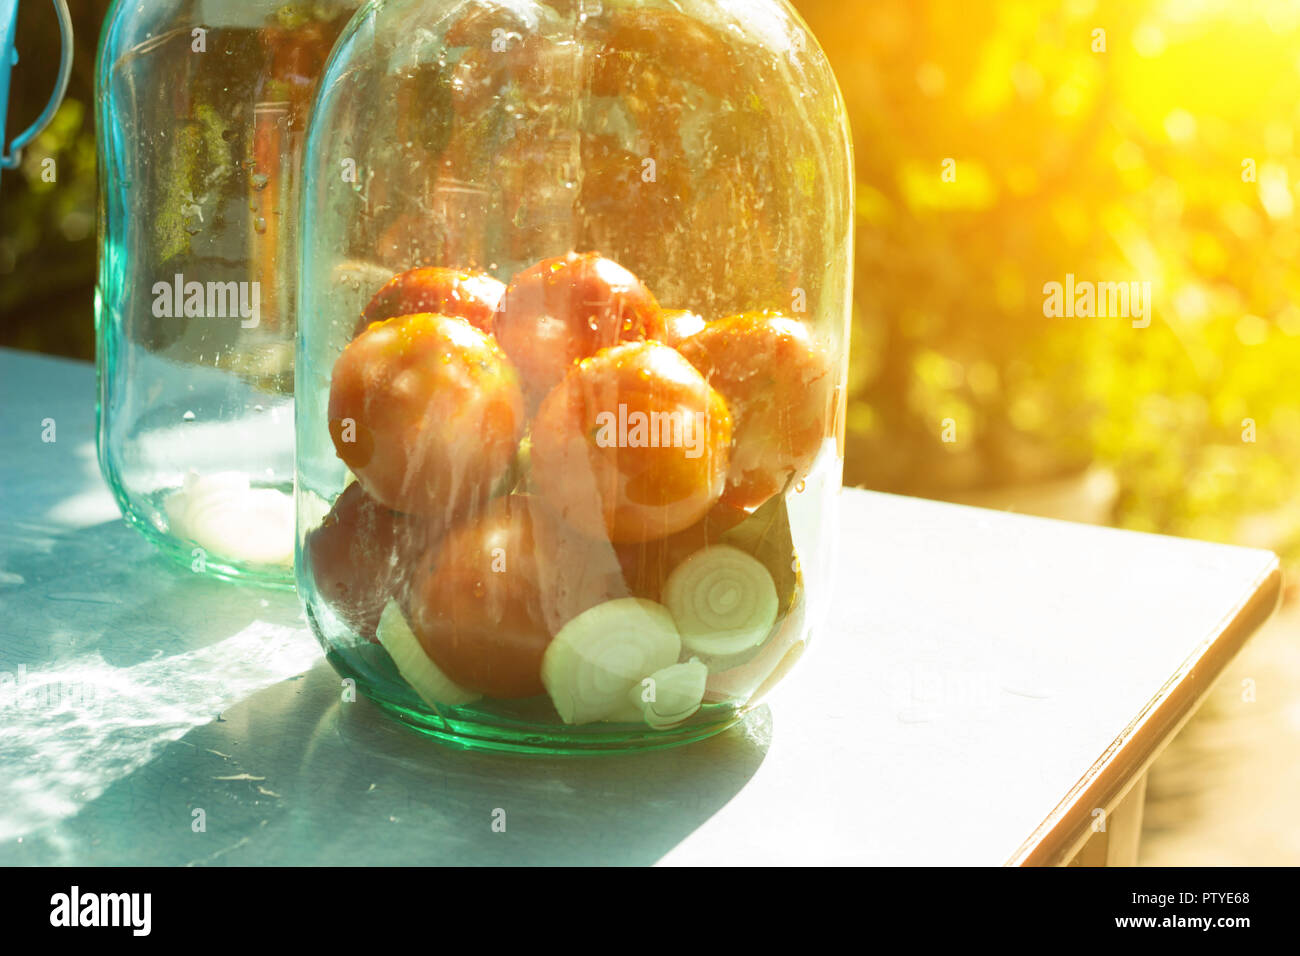 Closure of conservation on the table with tomatoes, sun - Stock Image